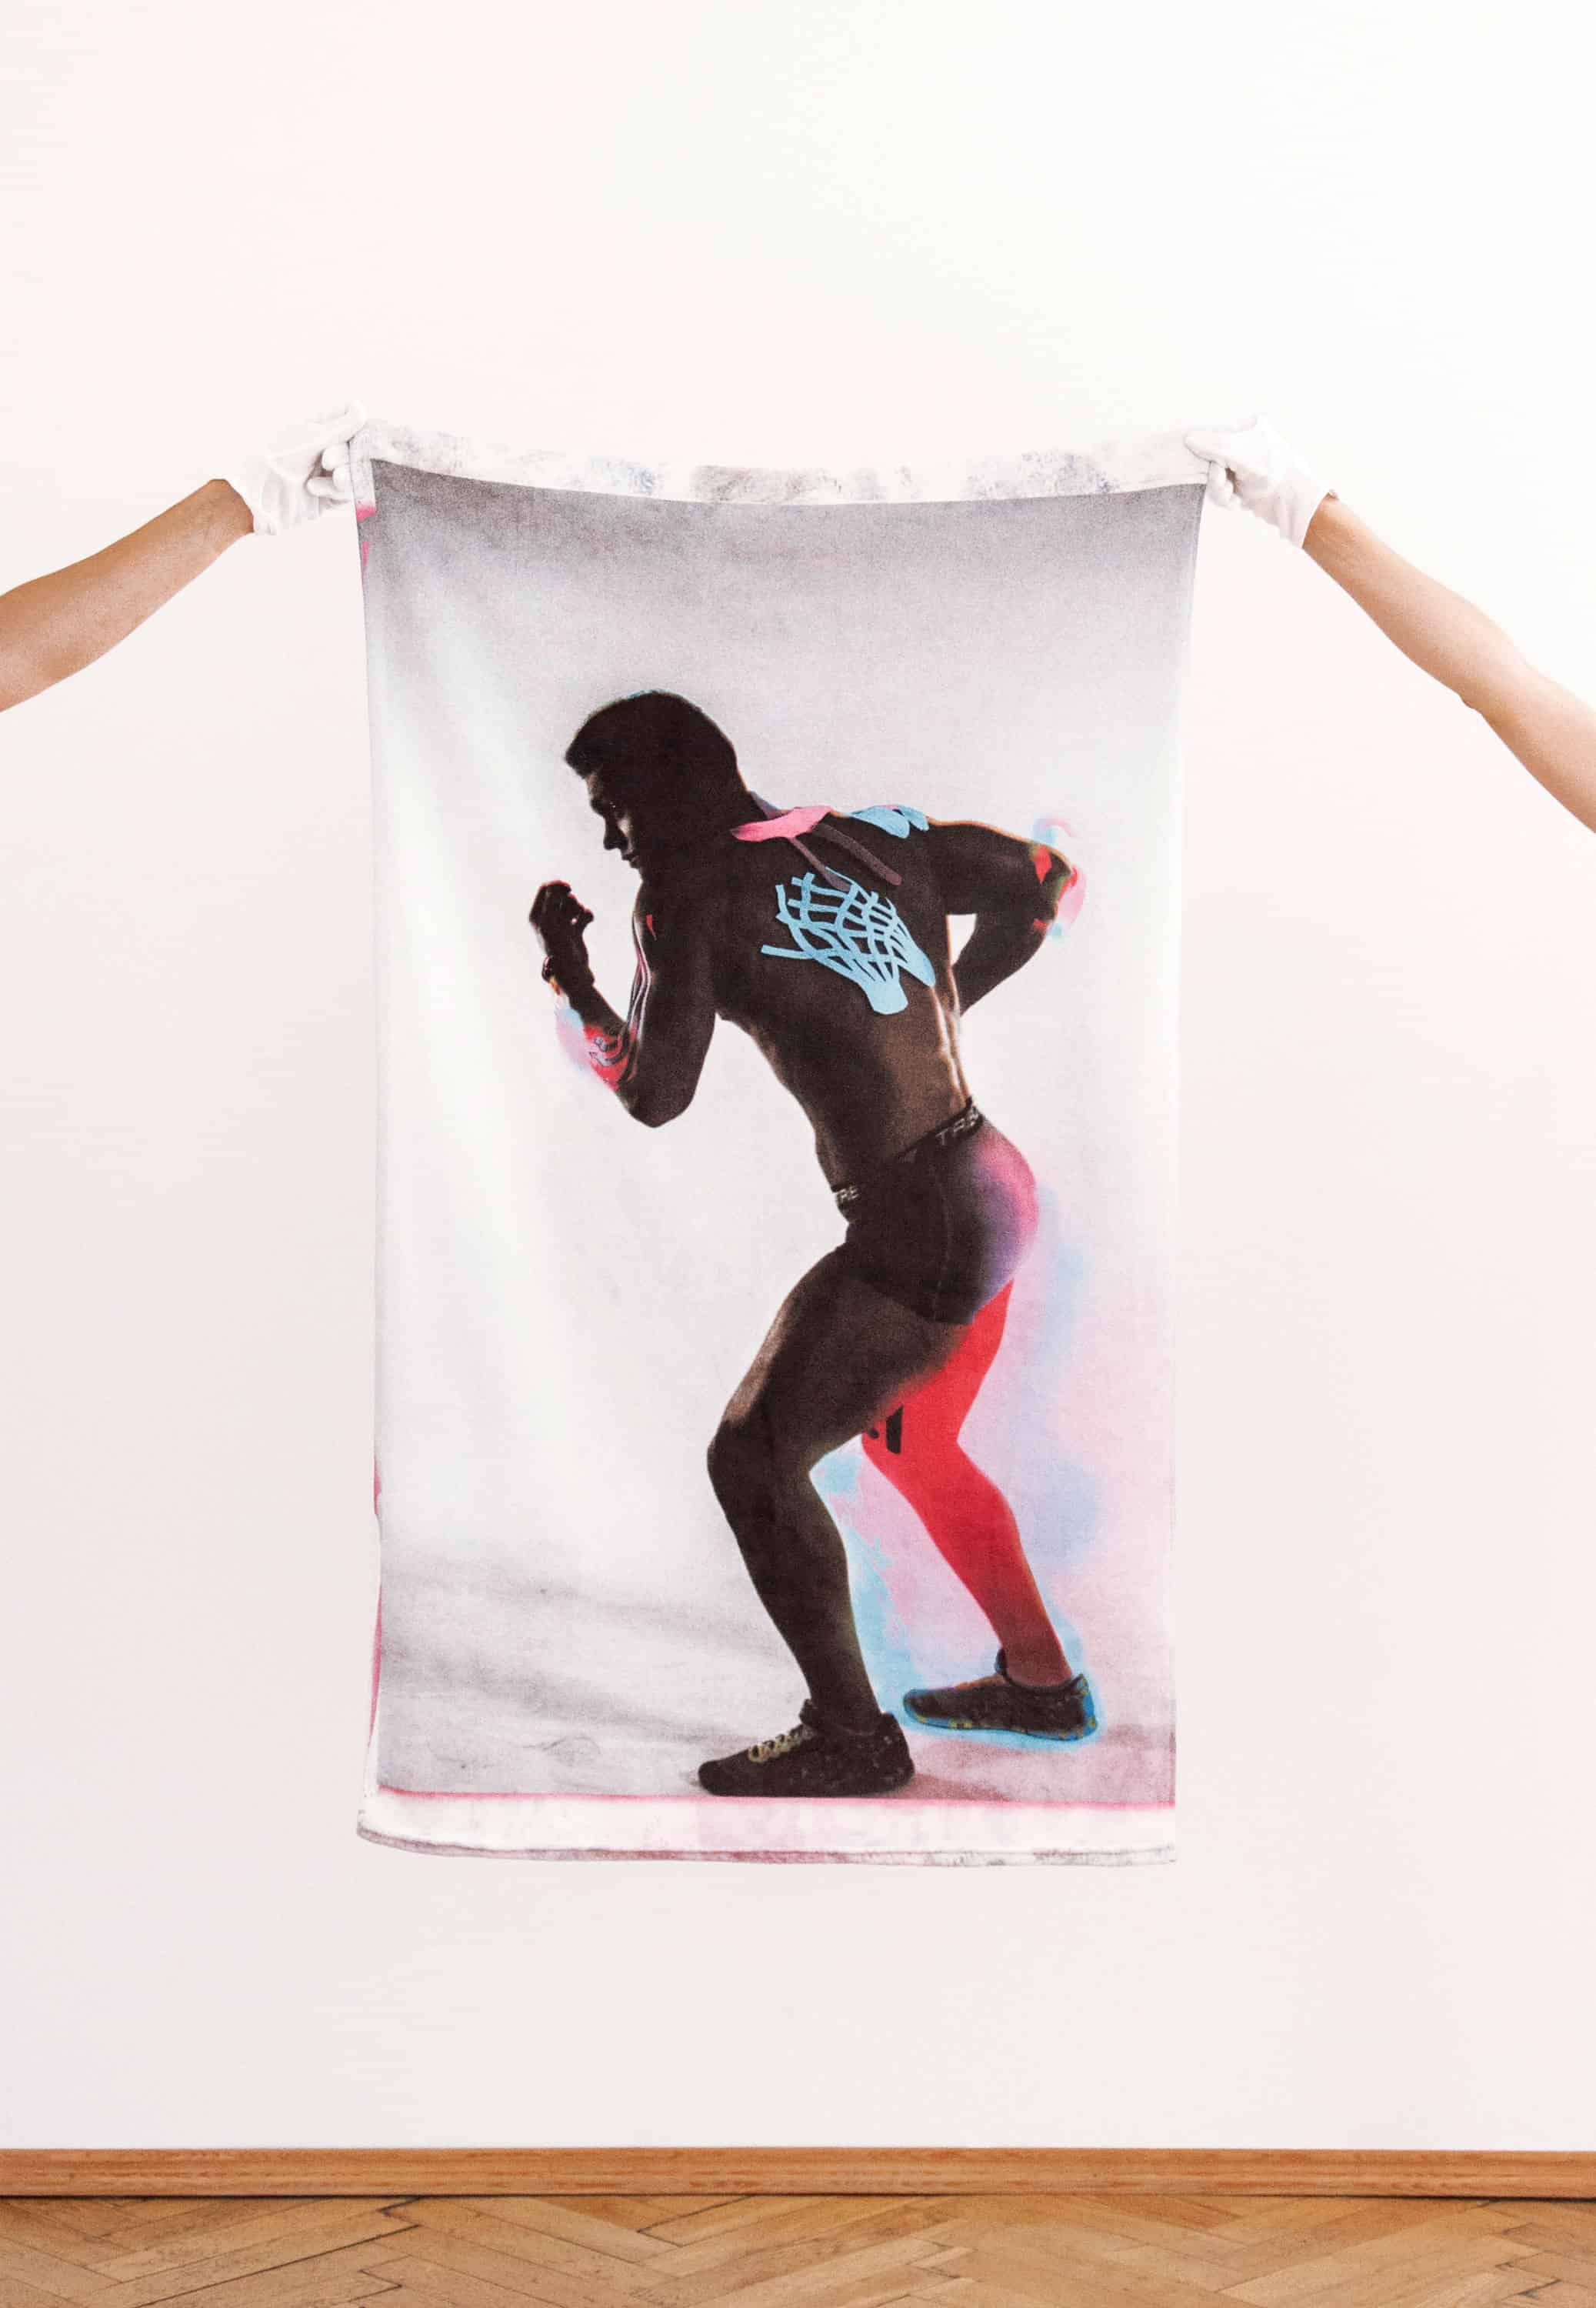 """Norbert Delman, """"Earn your shower series"""", 2015–2016, digital print on fabric (50% polyester, 50% cotton), 130 × 70 cm"""